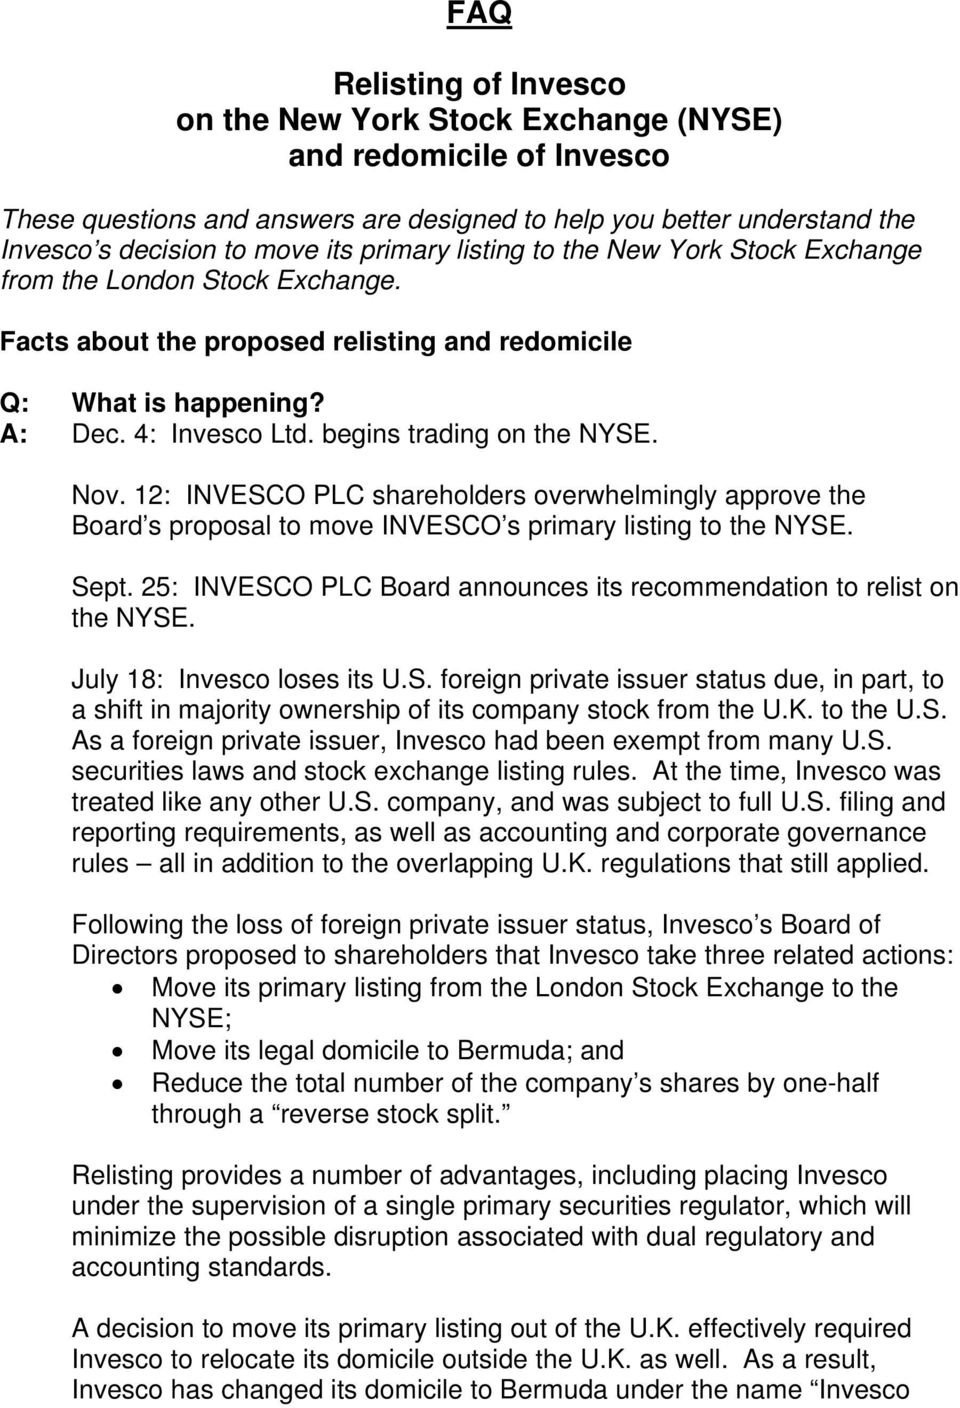 Faq Relisting Of Invesco On The New York Stock Exchange Nyse And